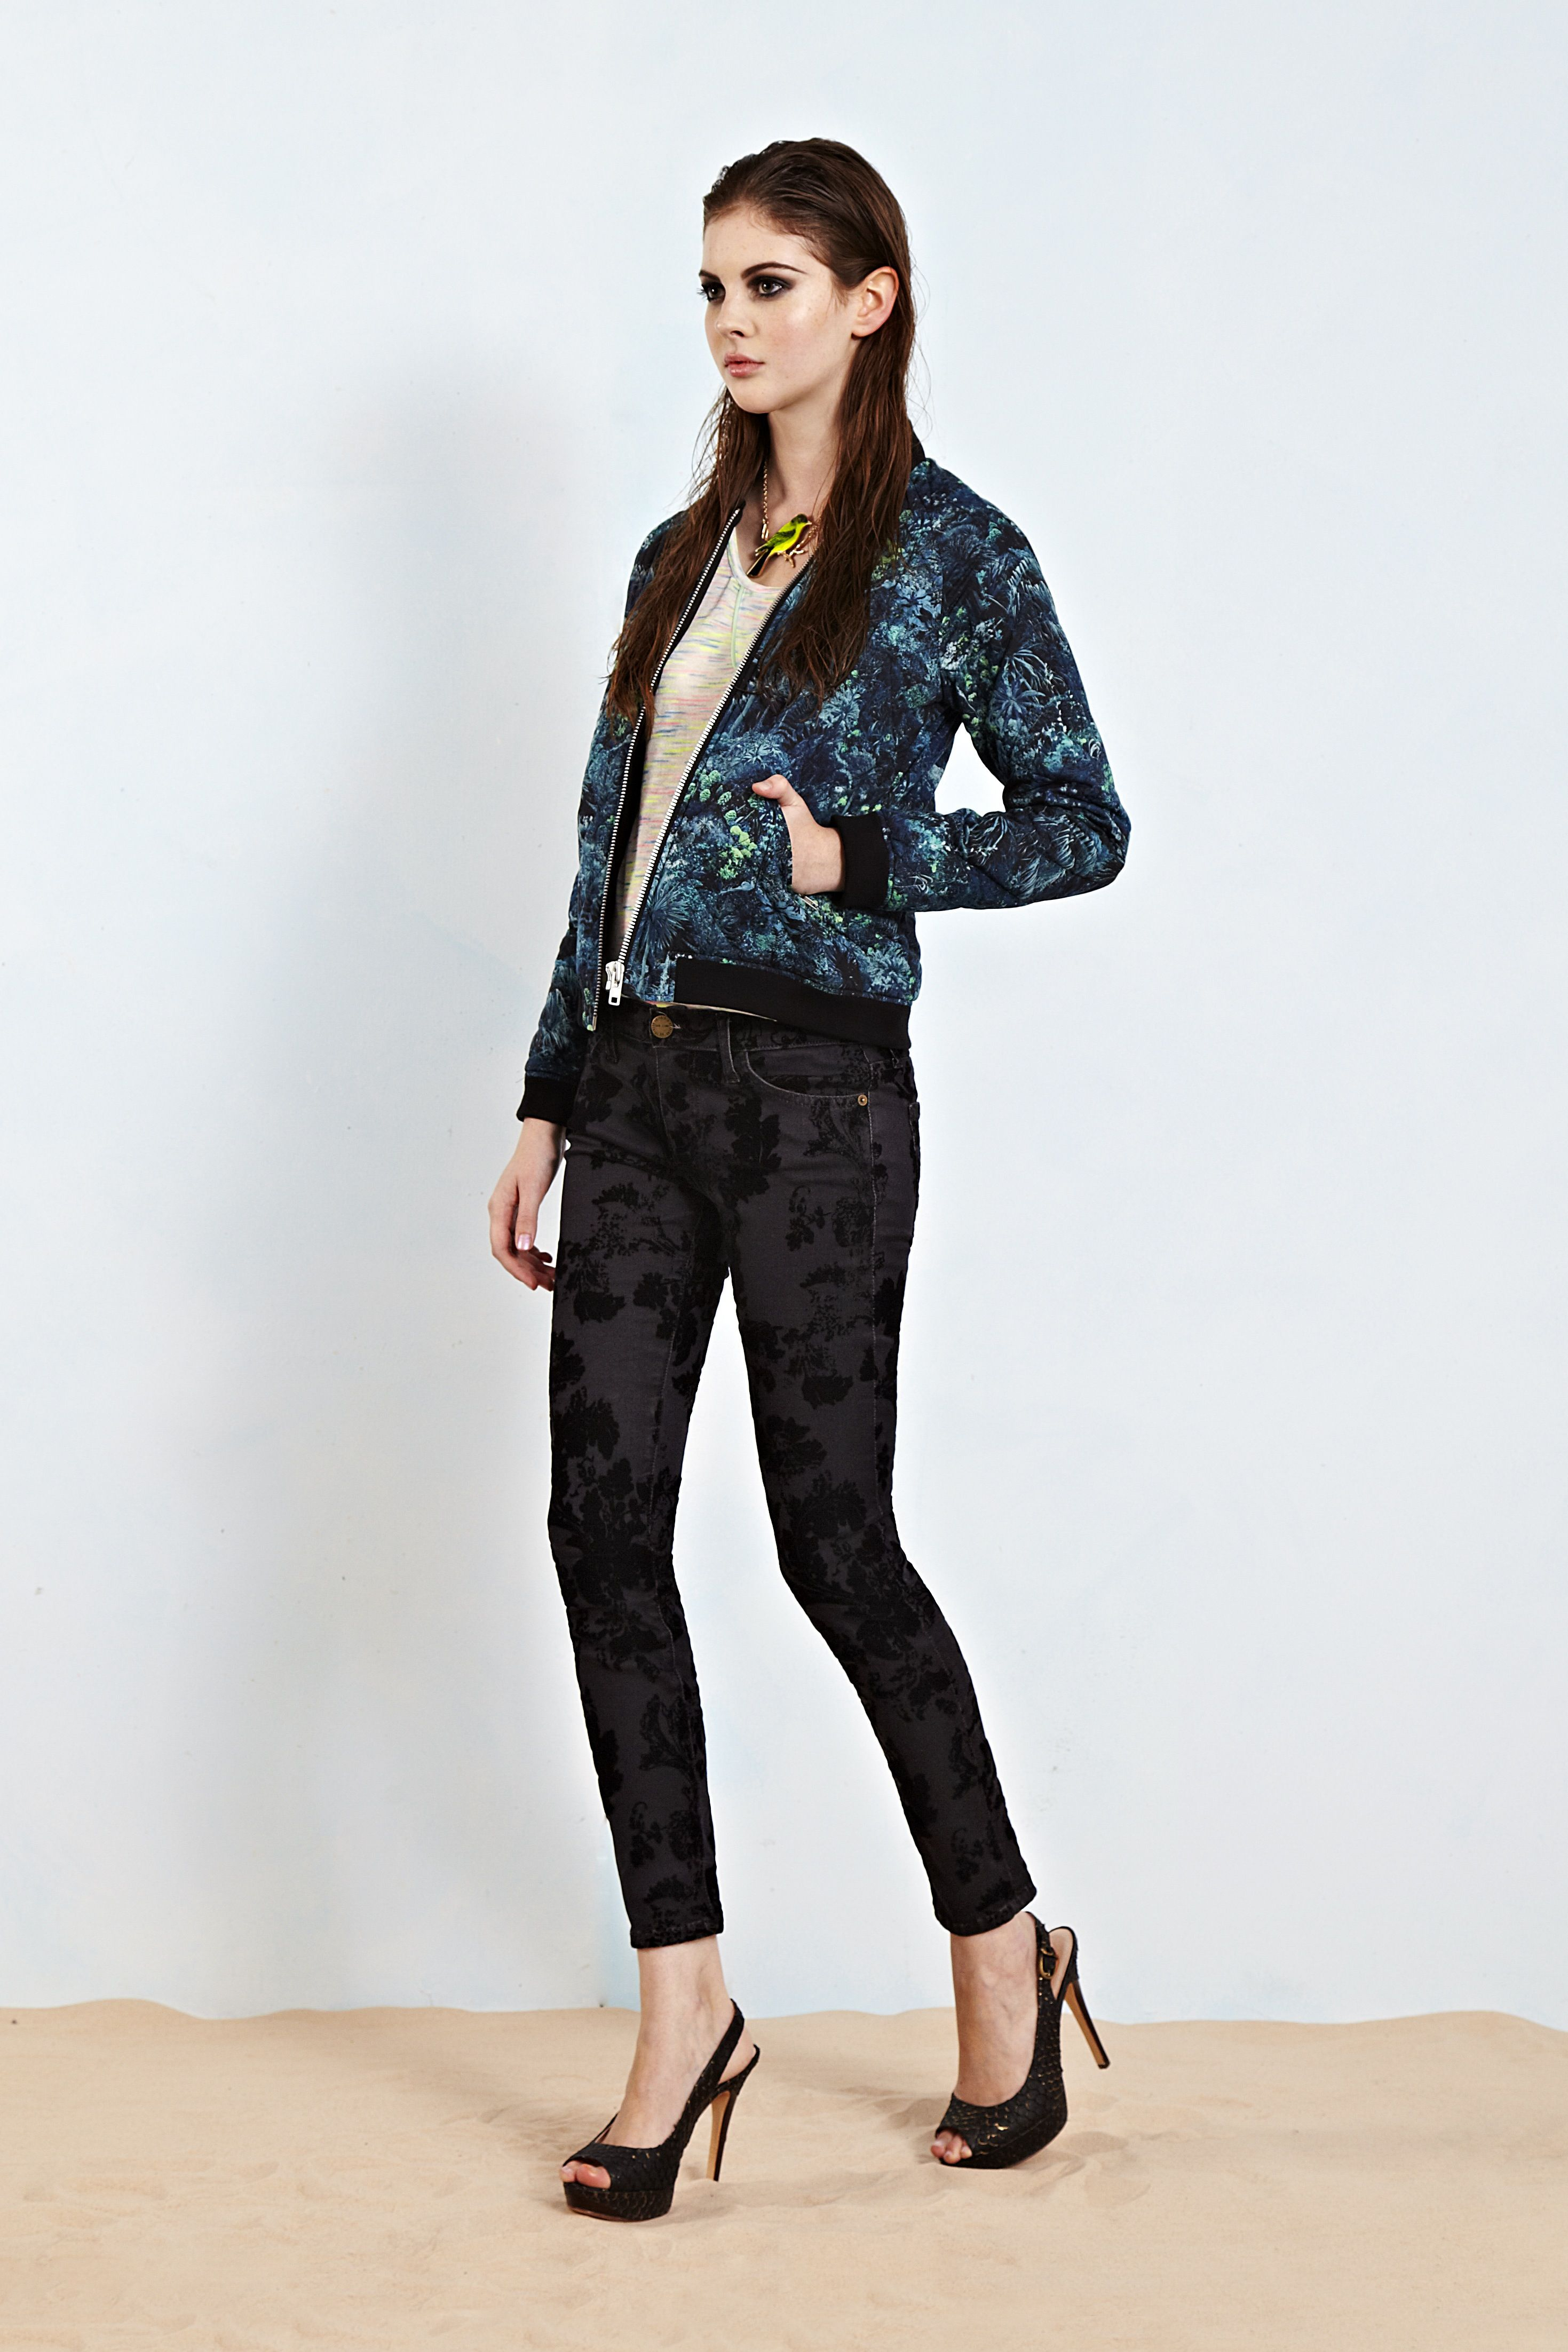 Digital prints from American Retro and their statement Bobby bomber jacket